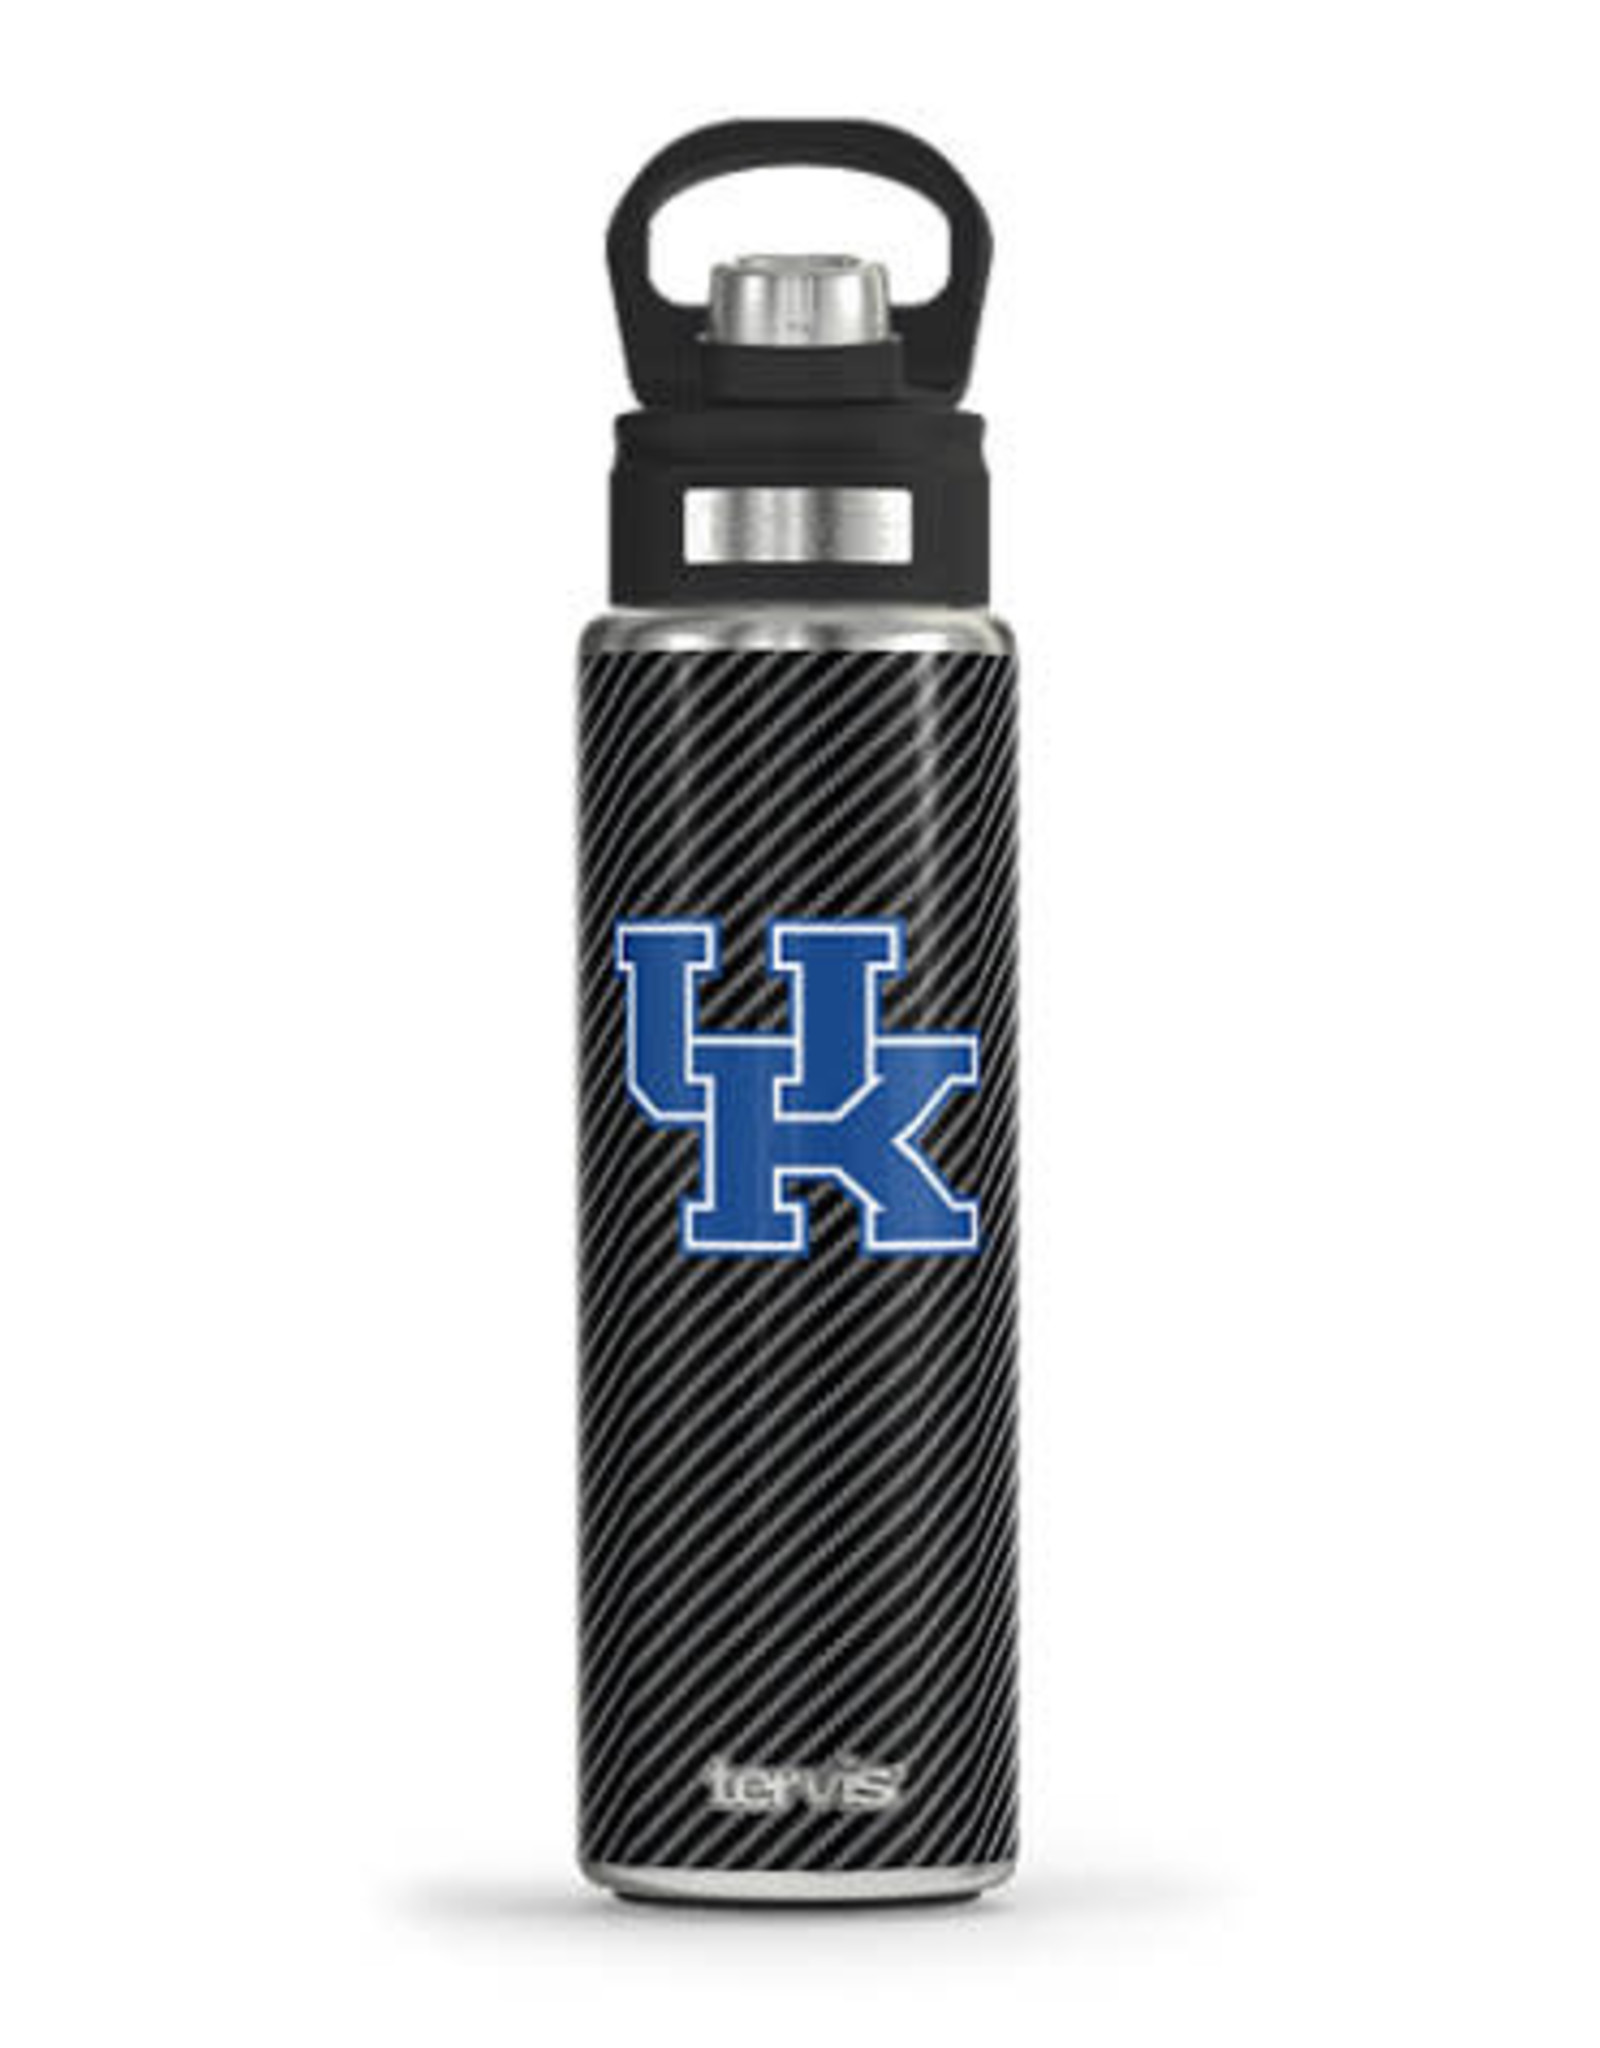 Tervis Tumbler 24oz. Kentucky Wildcats Carbon Fiber